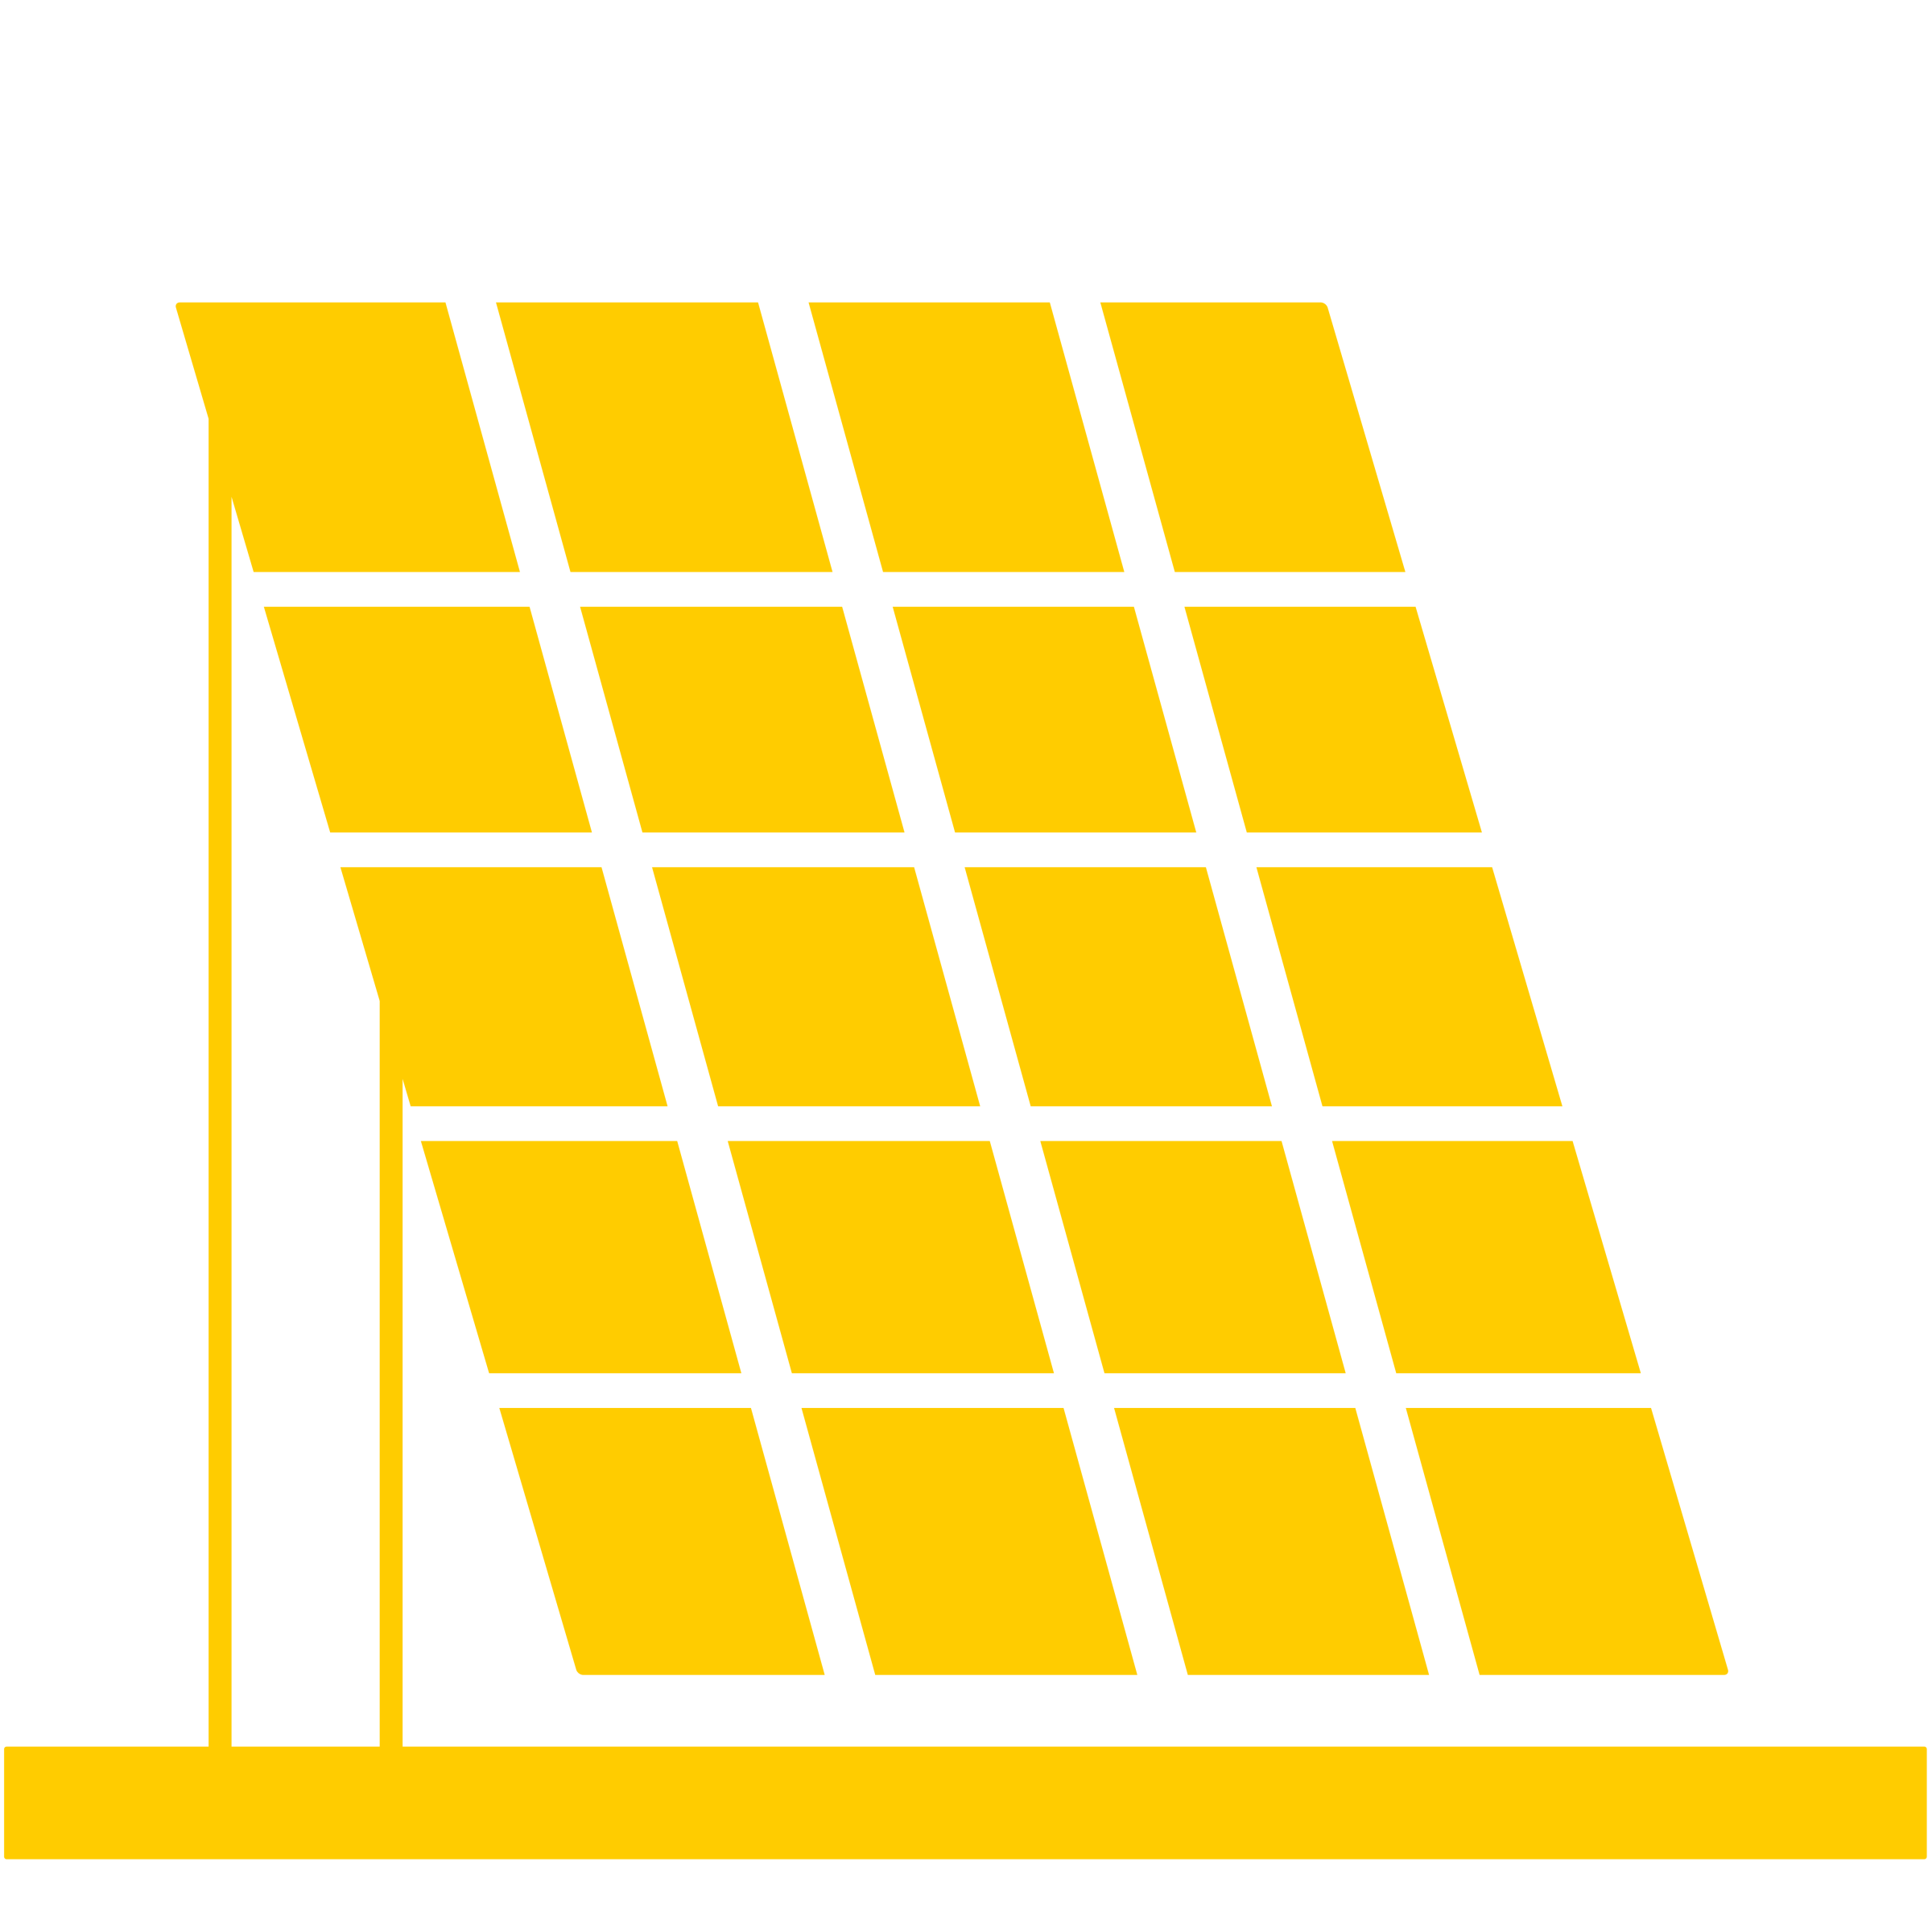 clipart transparent Source clipart solar cell. Energy sources icons png.